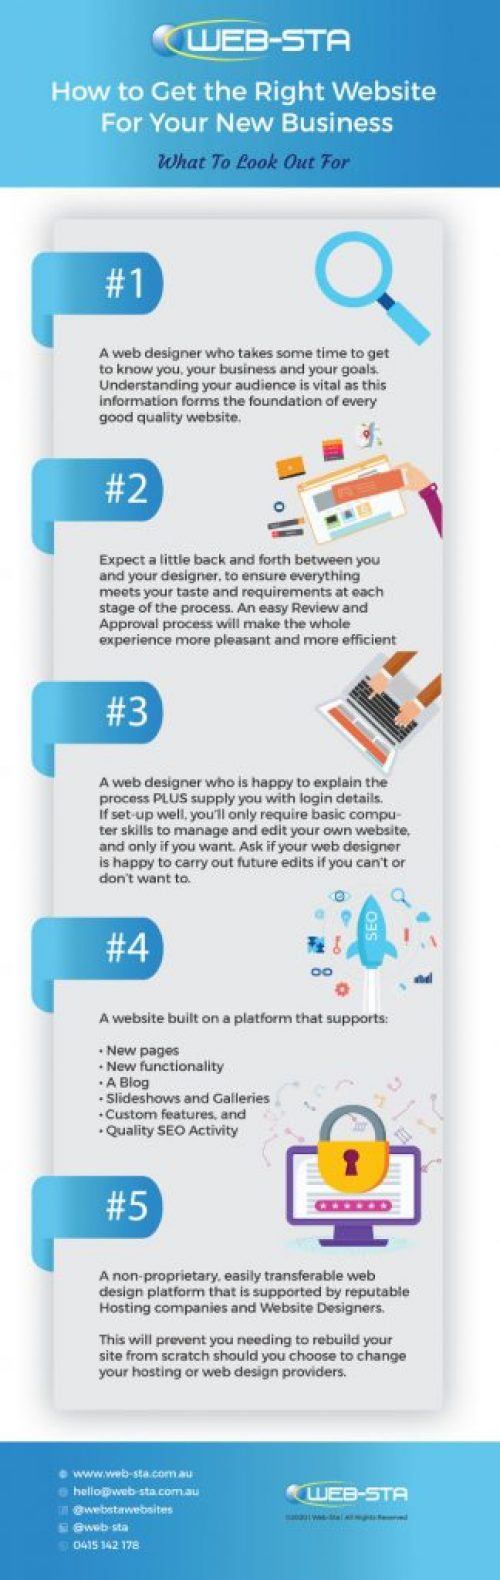 WEB-STA Web Design -Infographic New-Website for New Business